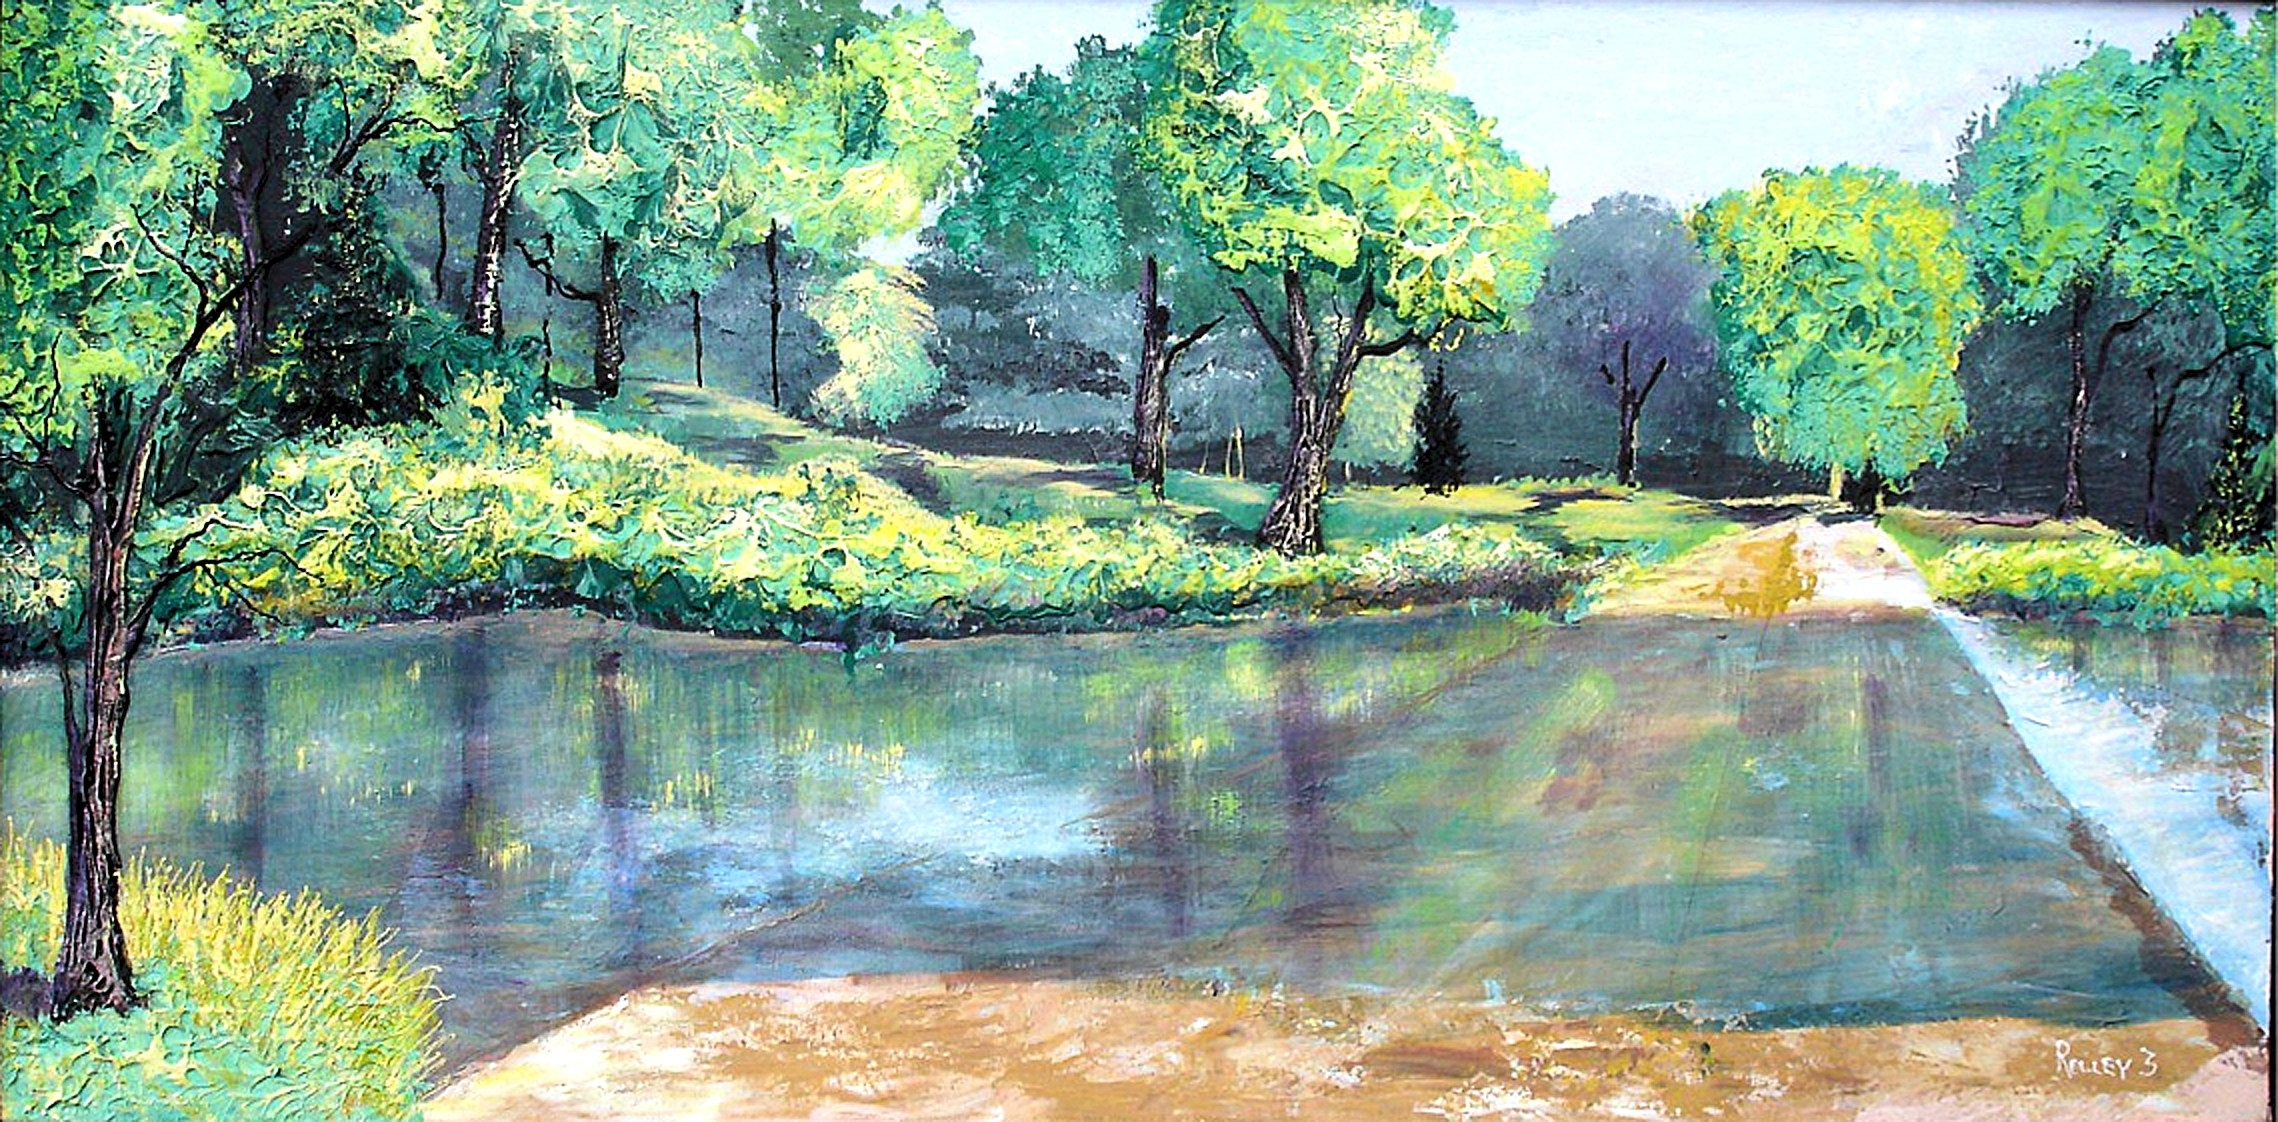 WHIT PINES CREEK  CROSSING   24x48  $400